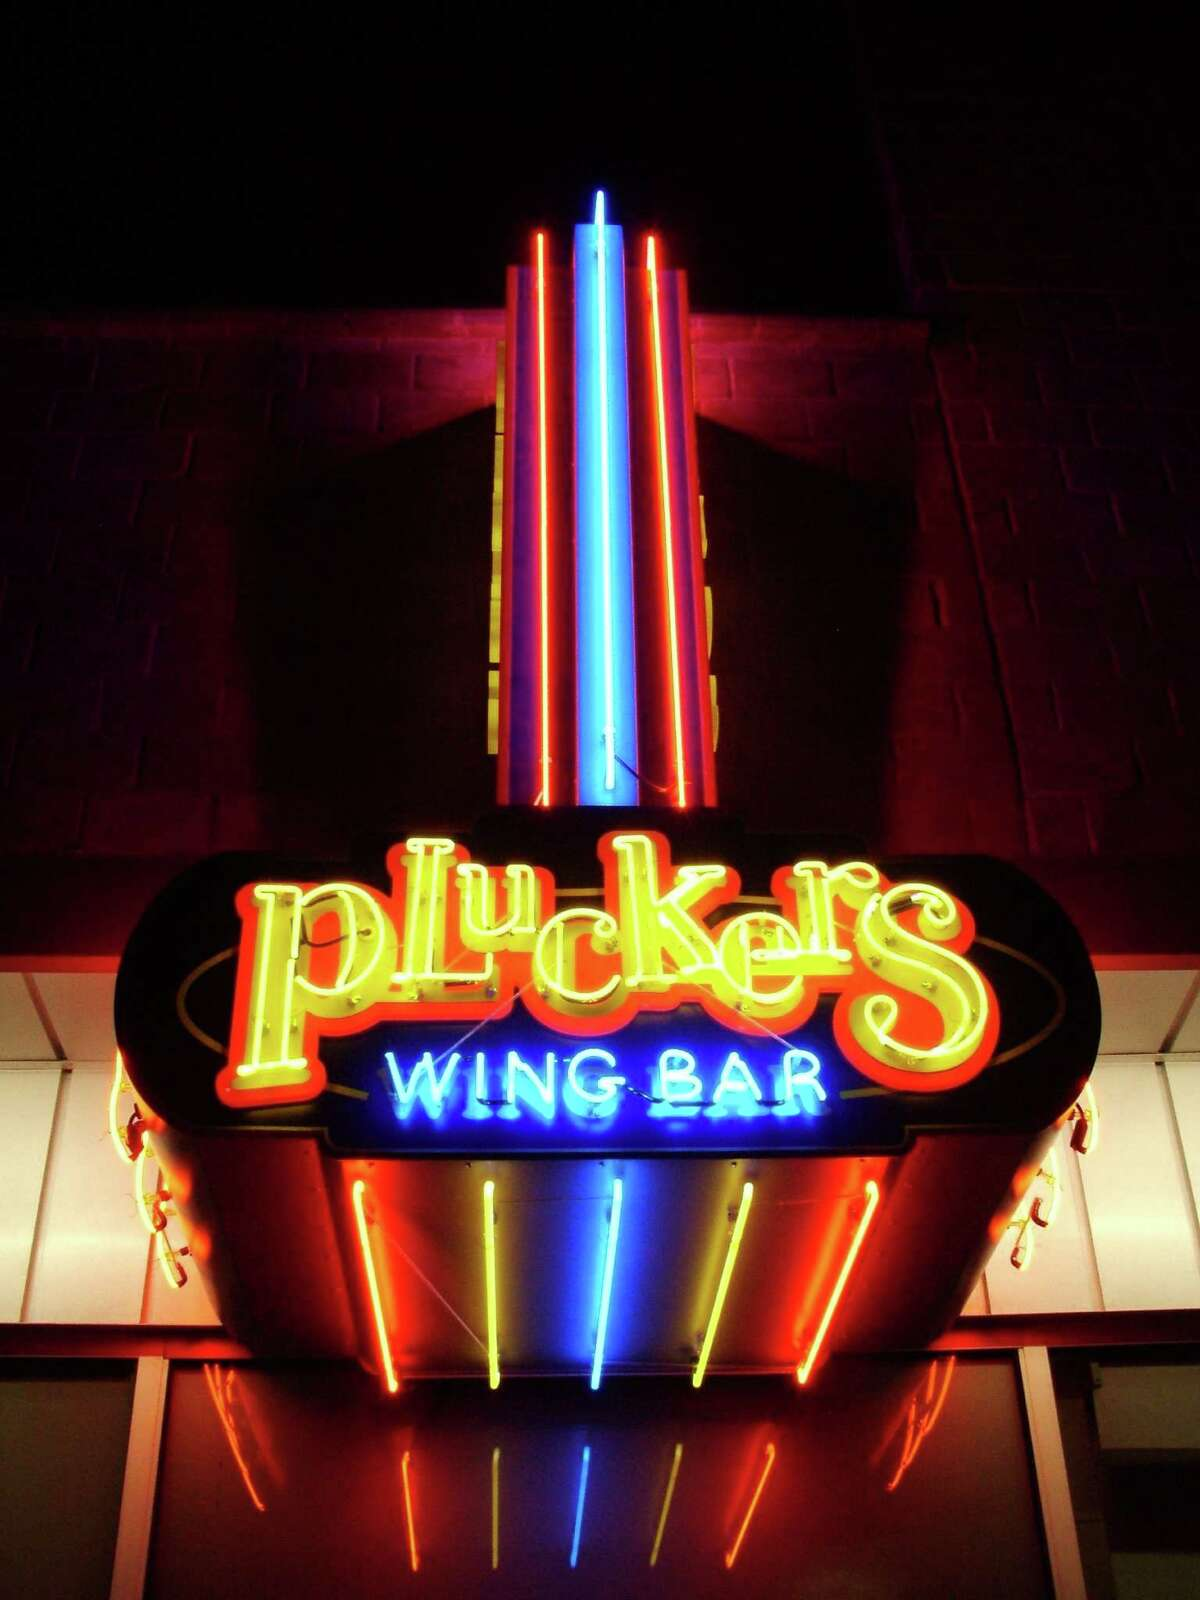 Austin-based Pluckers Wing Bar started near the University of Texas campus. Pluckers will be adding a Houston location at the end of the year.